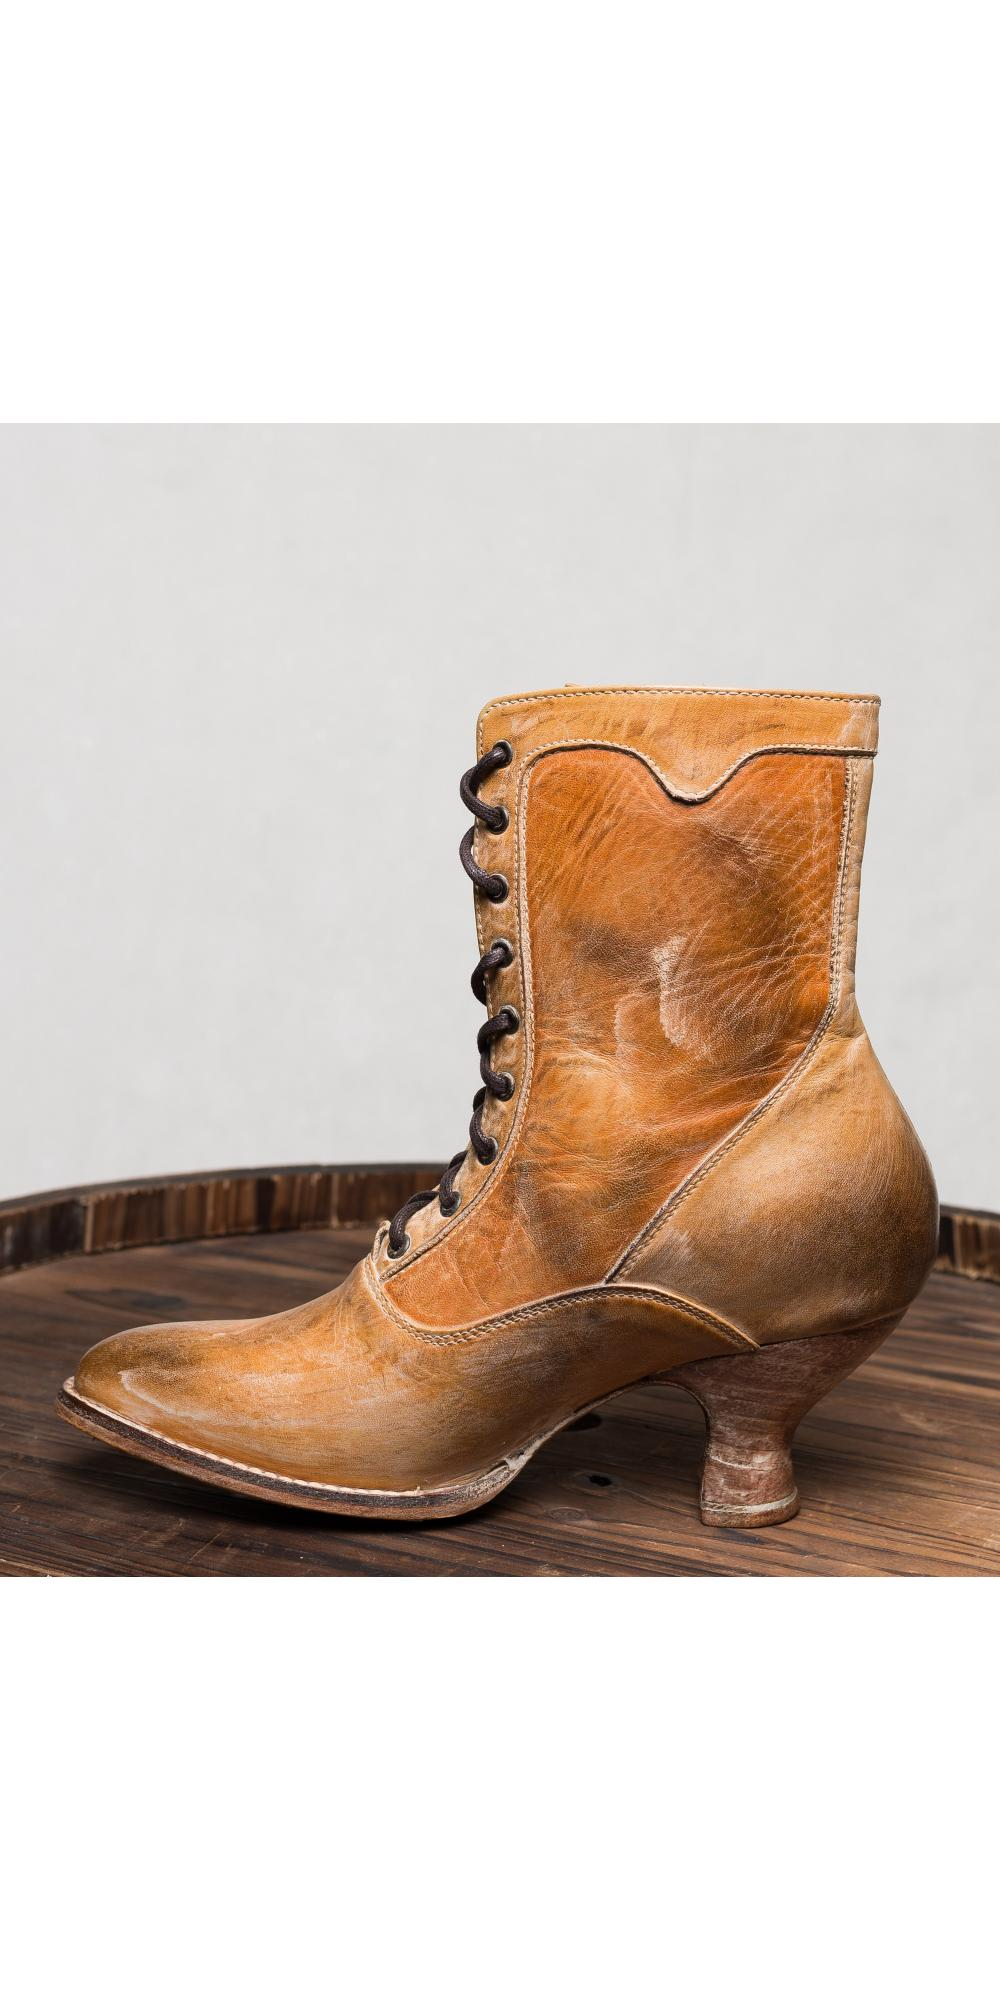 Victorian Style Ankle Boots In Tan Rustic